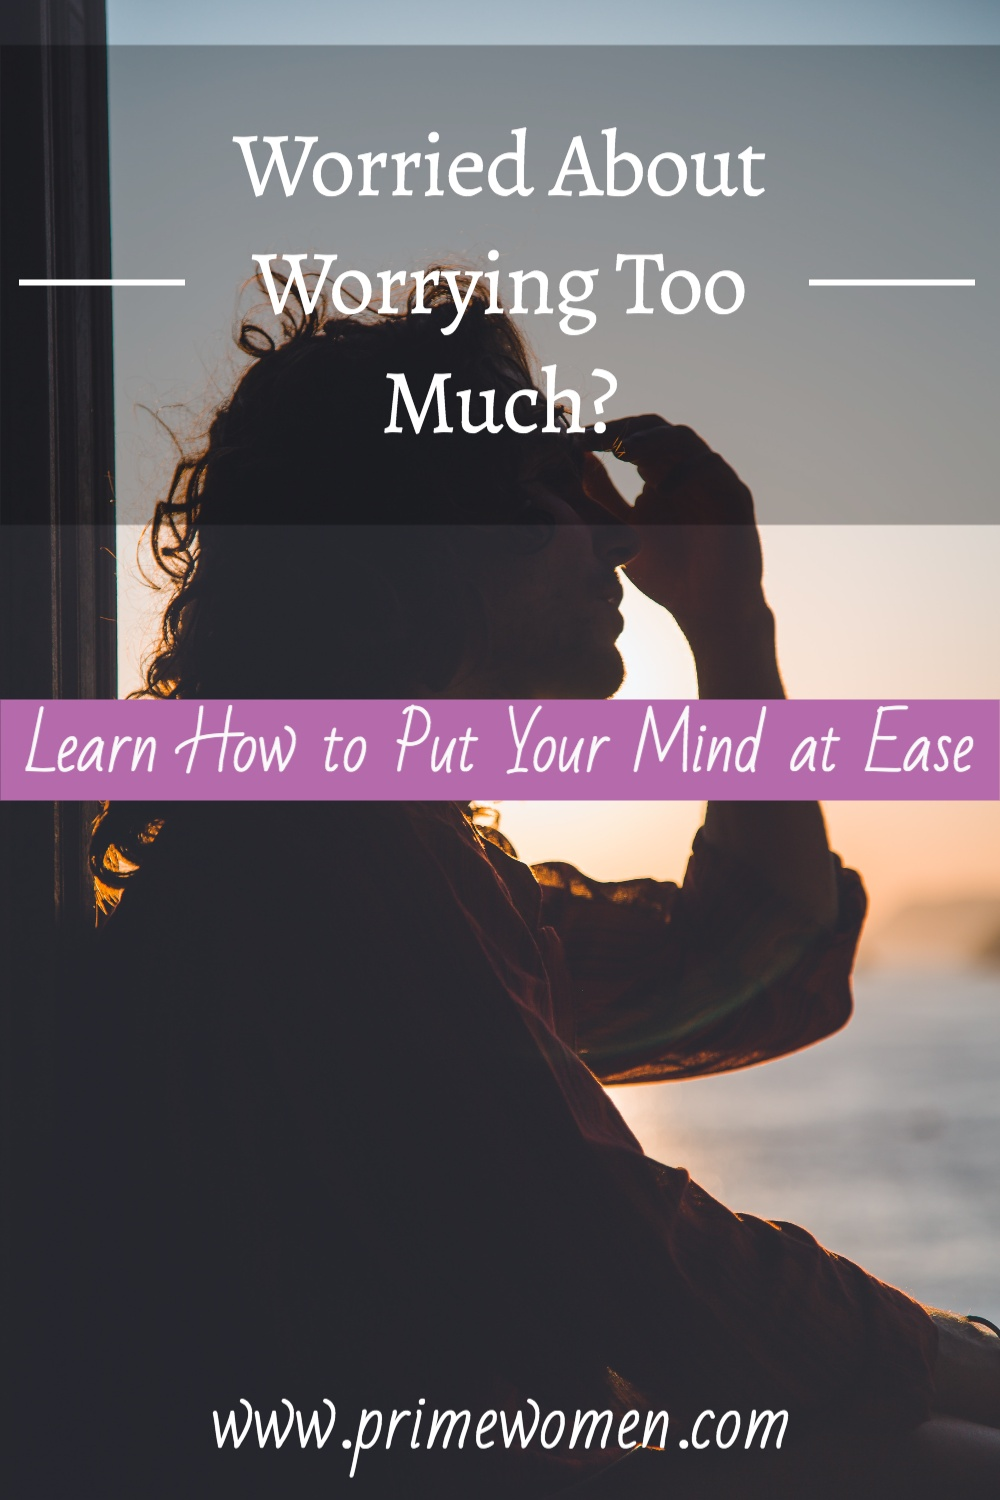 Worrying too much? Learn how to ease your mind.